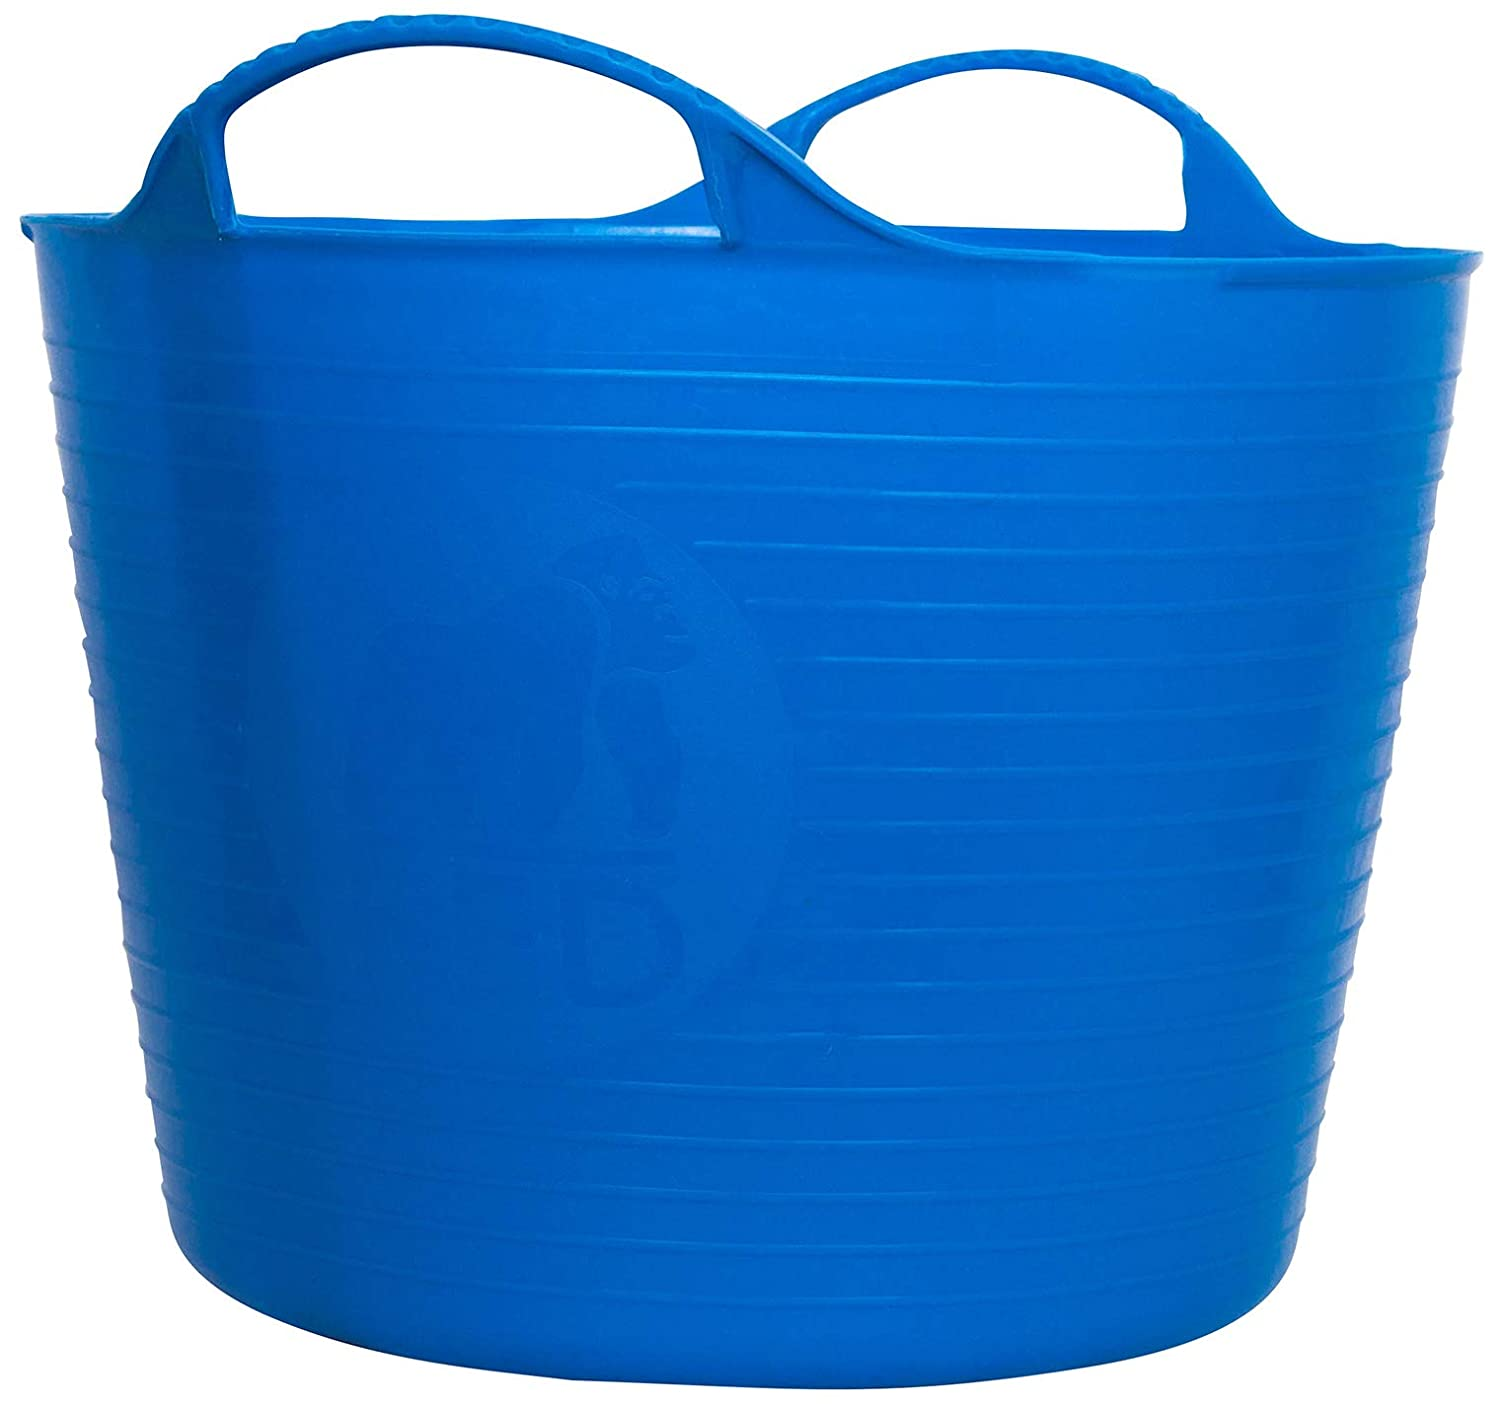 Tubtrugs Small 10 Tub, 3.5 Gallon, Blue